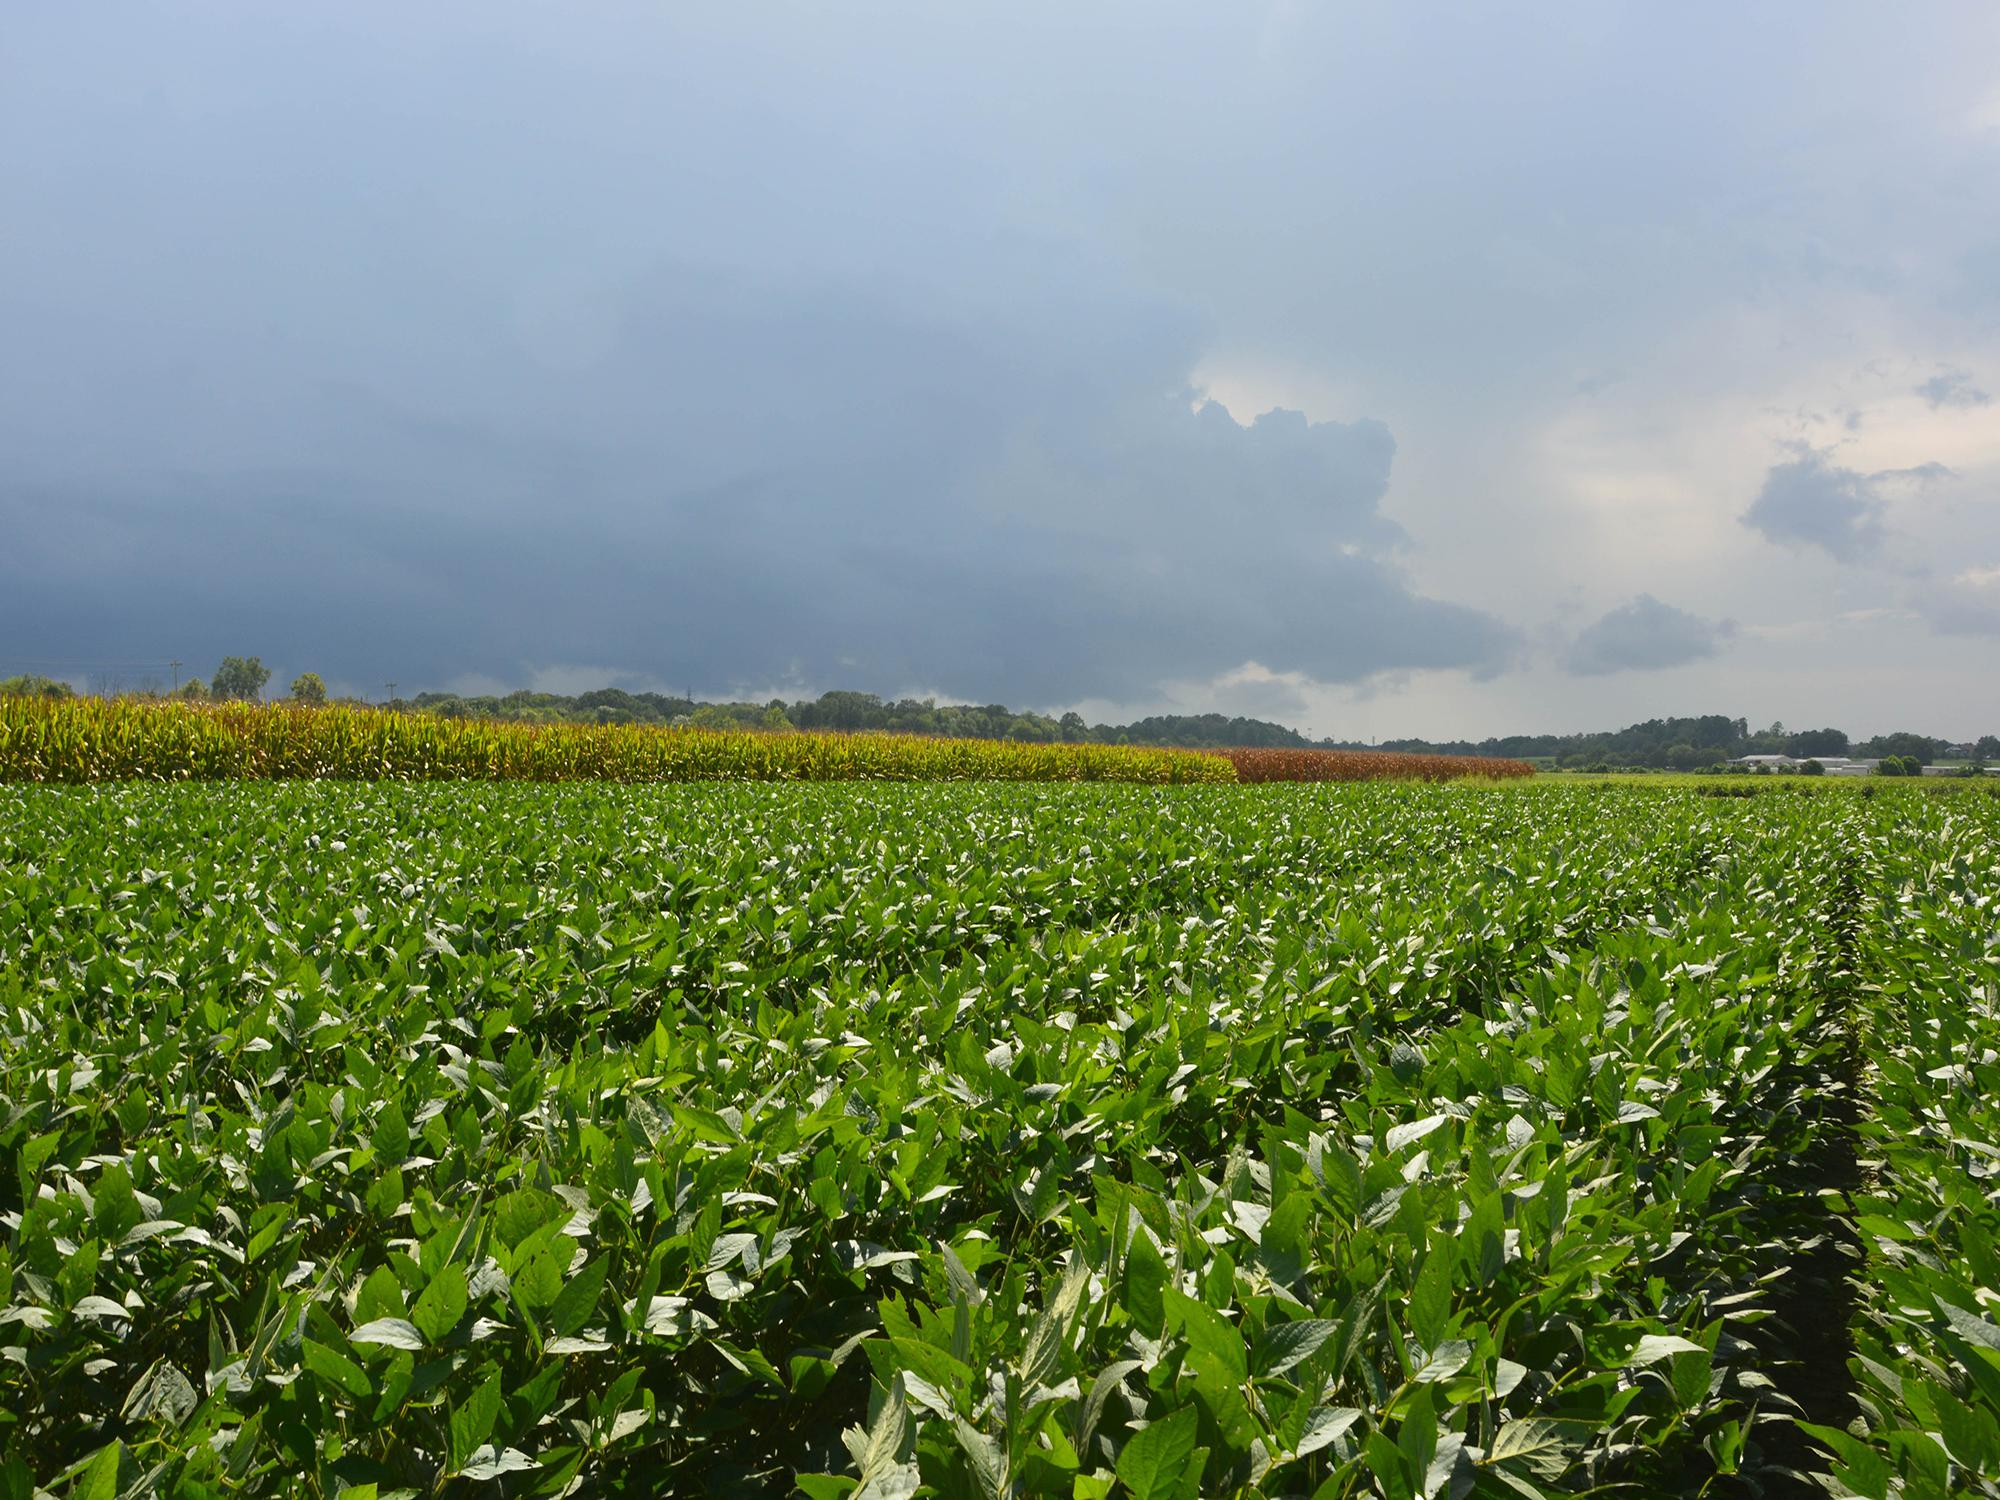 Dark clouds move toward Mississippi State University soybean and corn plots at the R.R. Foil Plant Science Research Center in Starkville, Mississippi, on Aug. 17, 2017. (Photo by MSU Extension Service/Linda Breazeale)